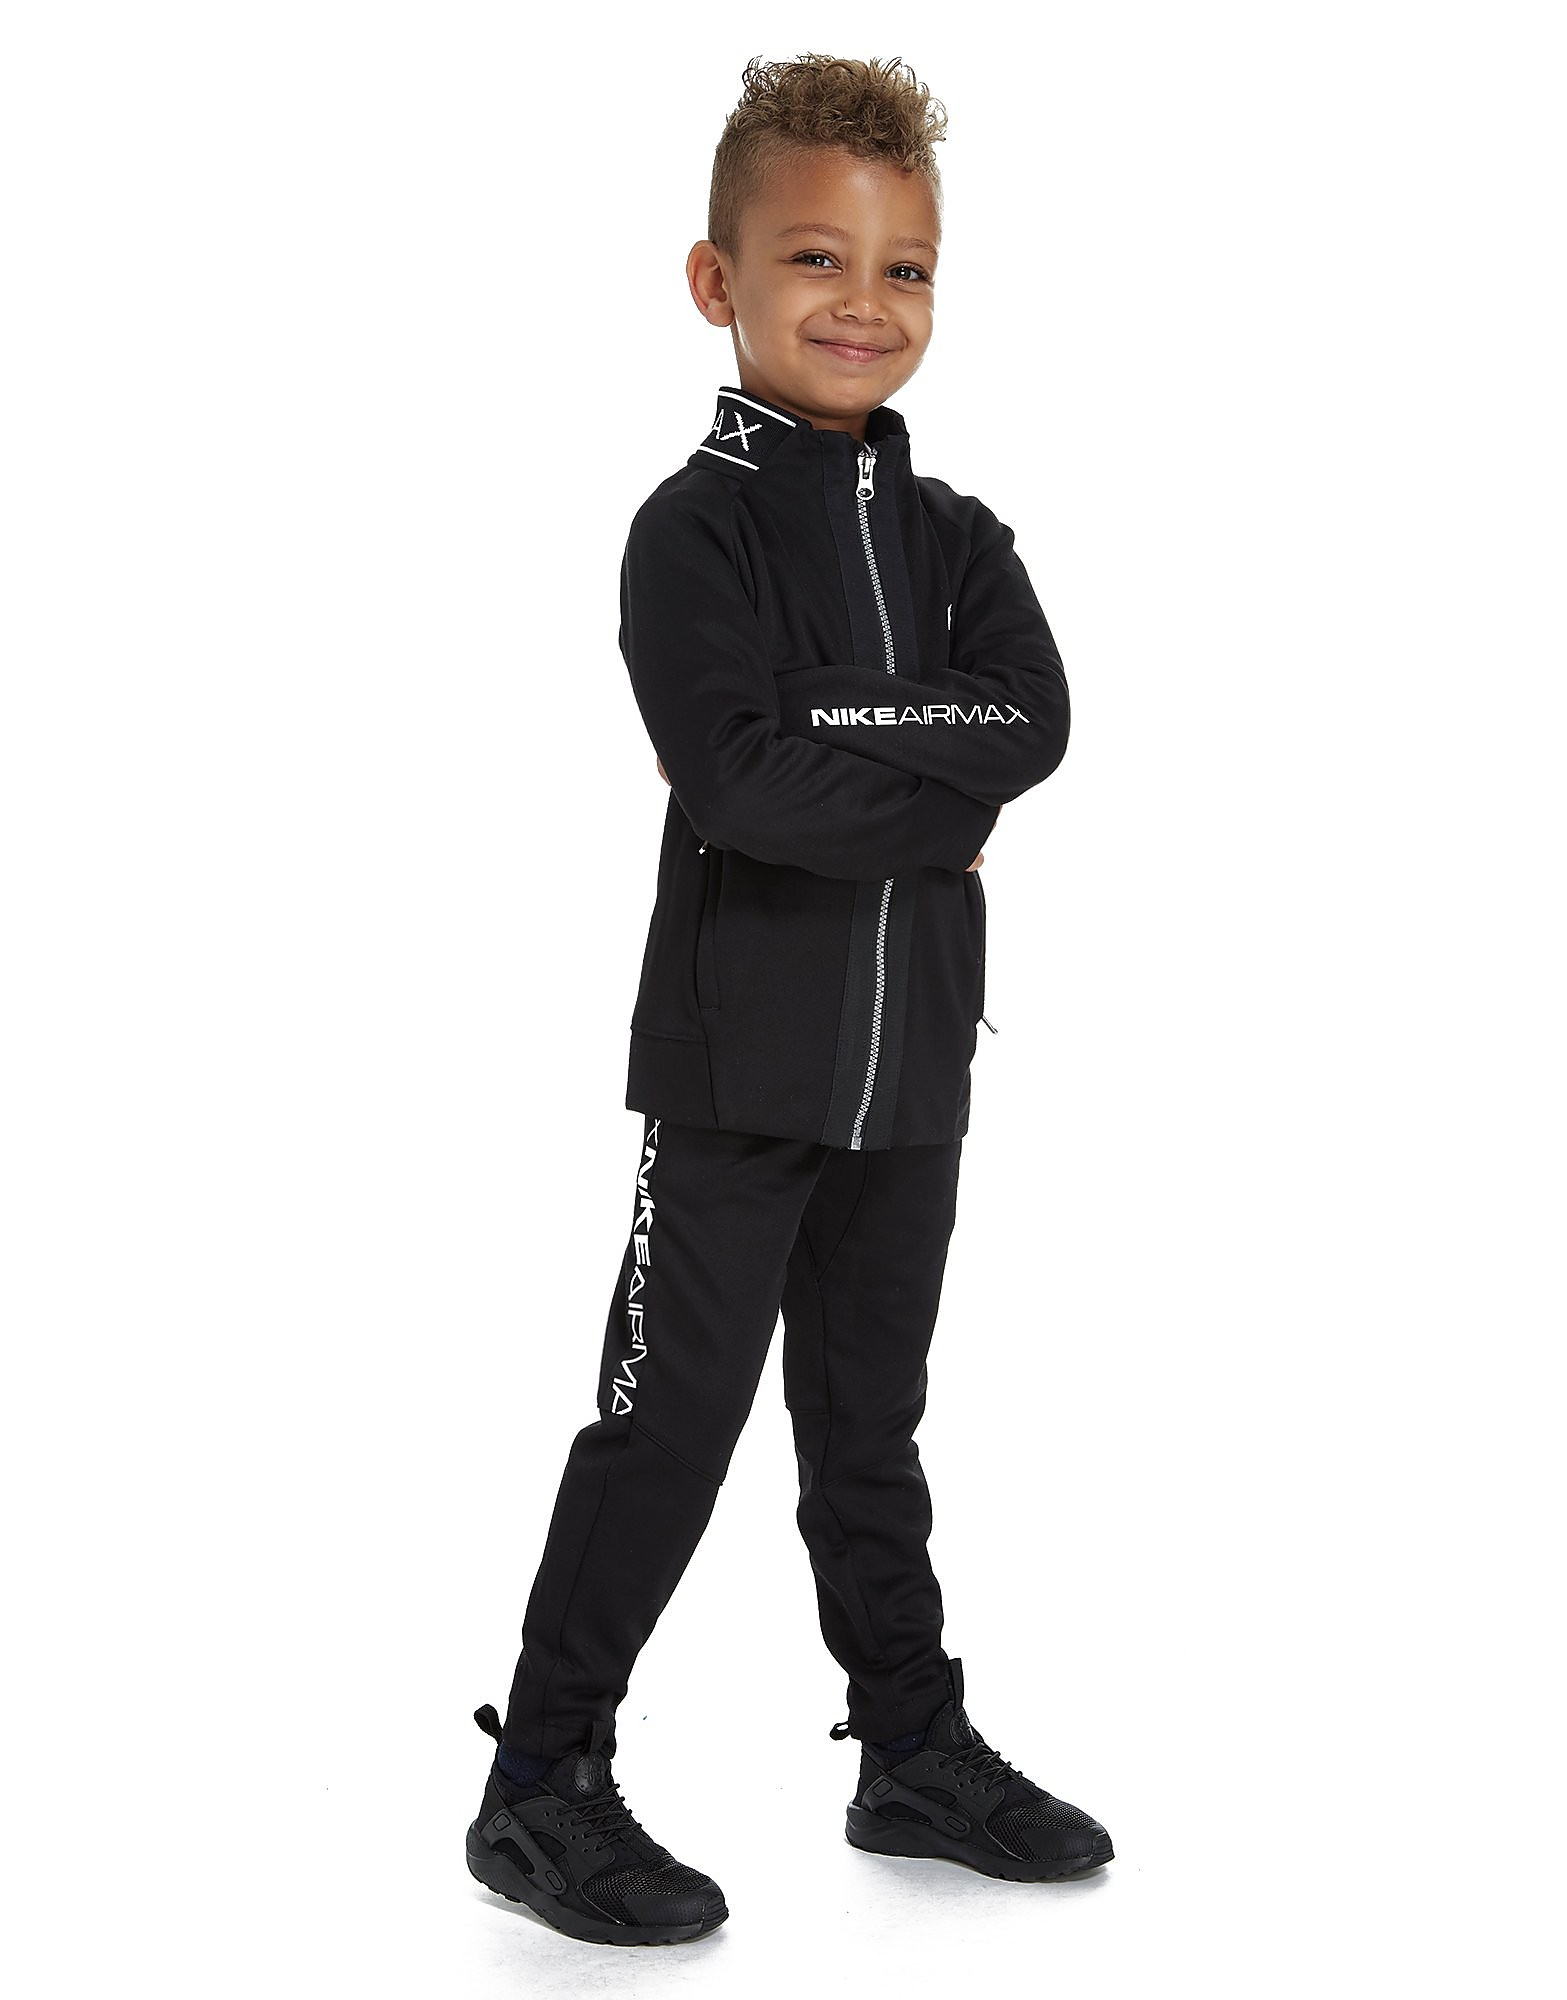 Nike Air Max Tracksuit Children